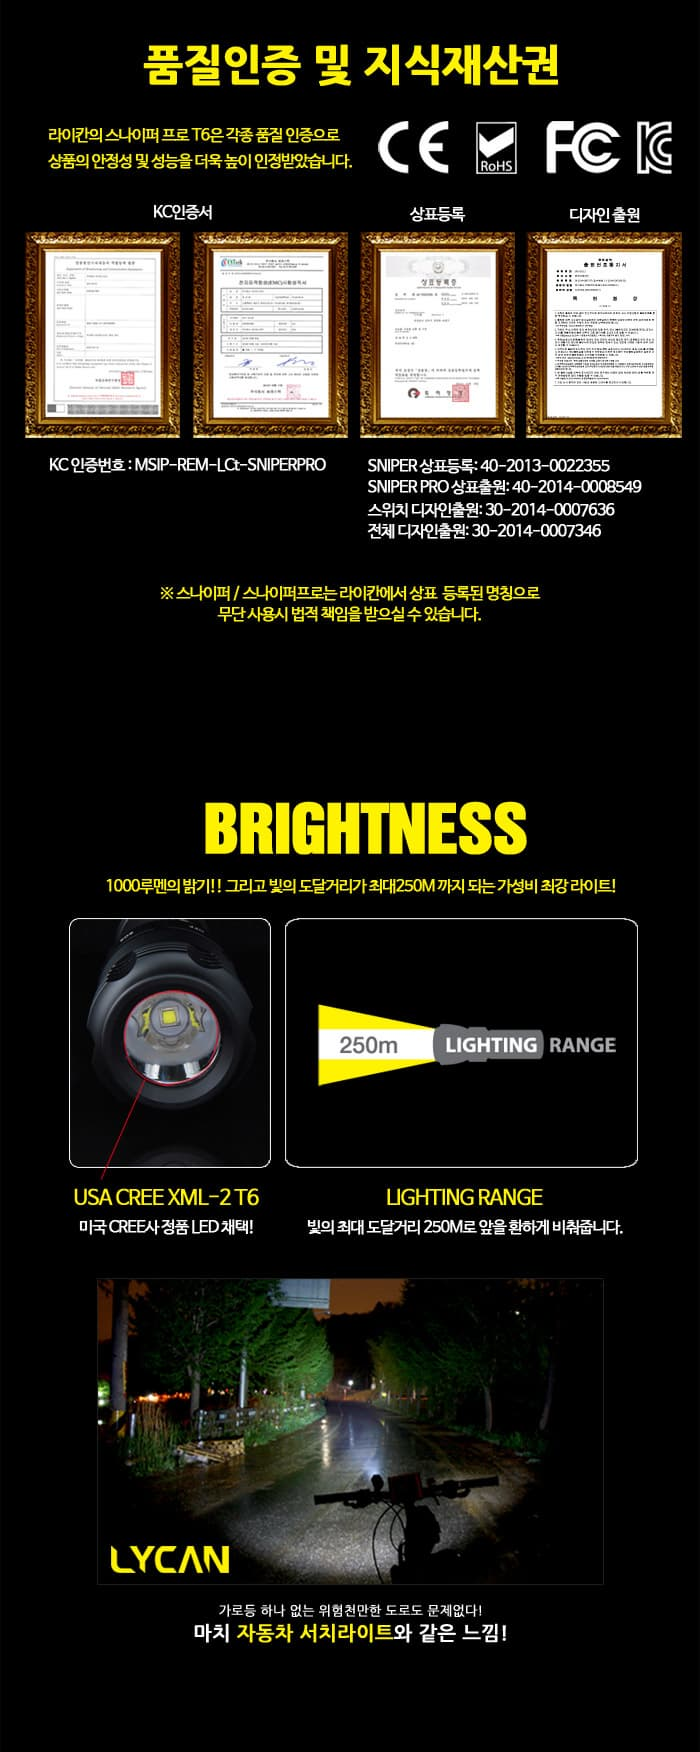 Cree XML-2T6 LED light